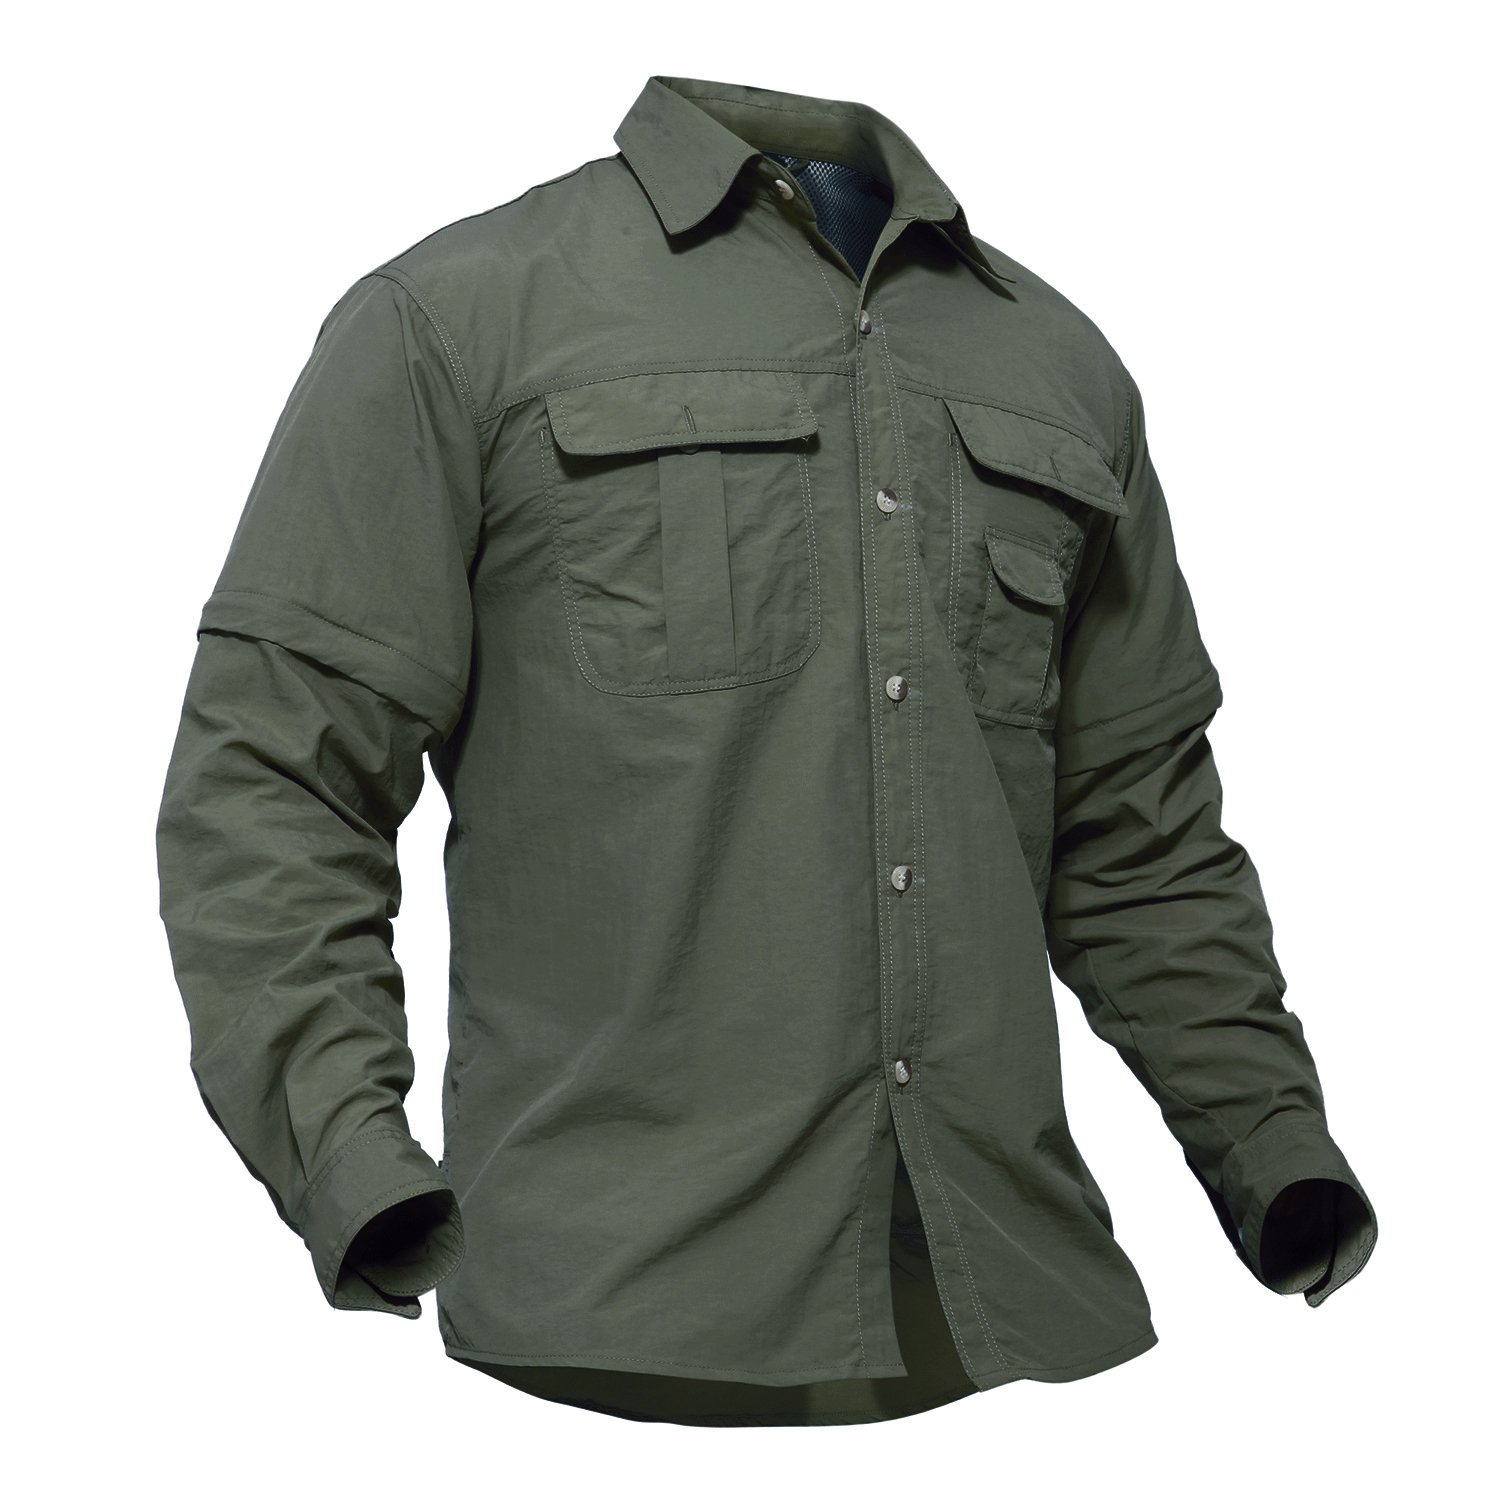 TACVASEN Outdoor Sport Military Tactical Battle Ripstop Long Sleeve Shirt for Men Army Green